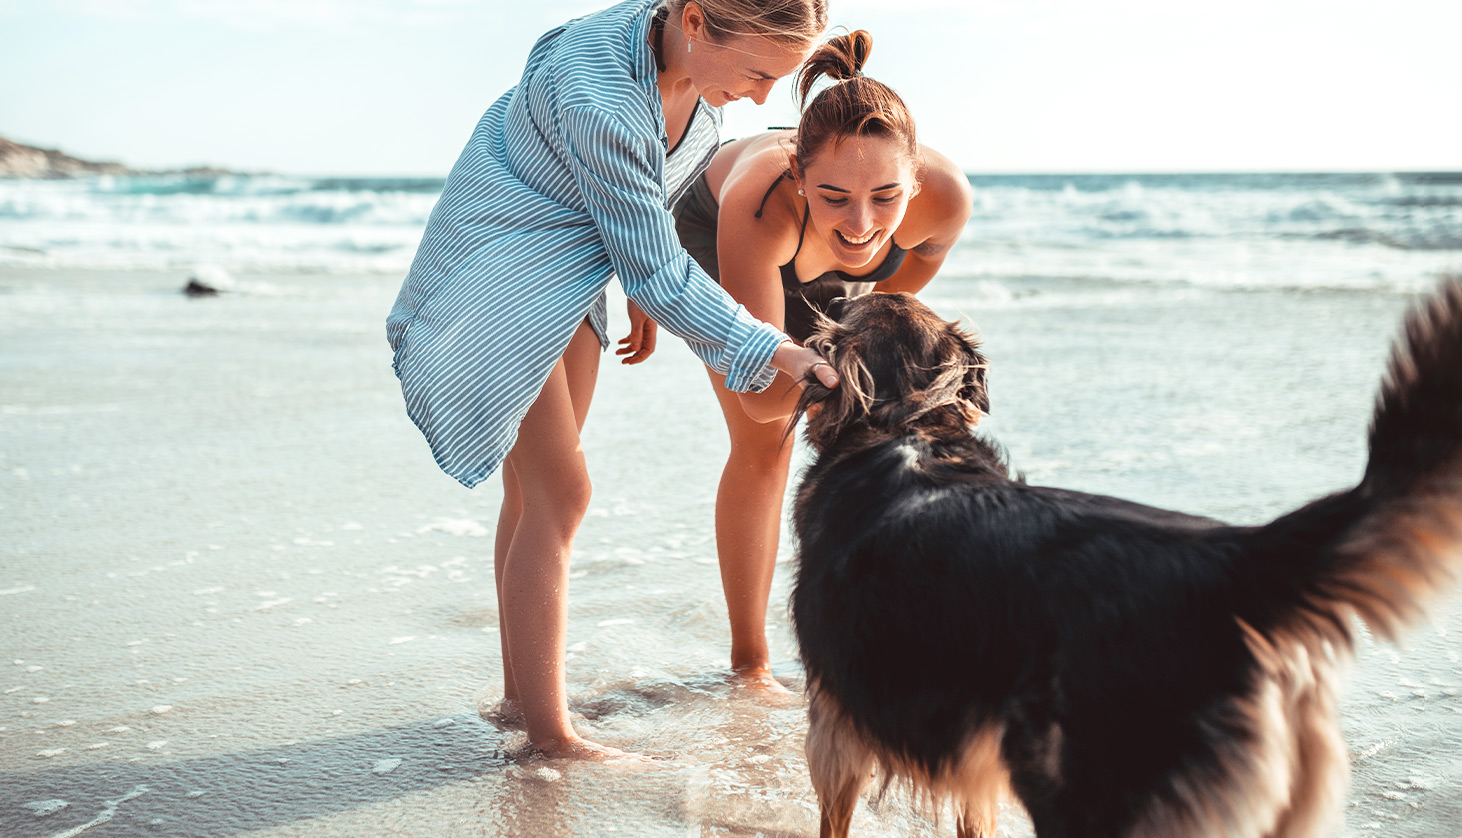 Leash on the Beach: 7 Tips for Taking Your Dog to the Beach